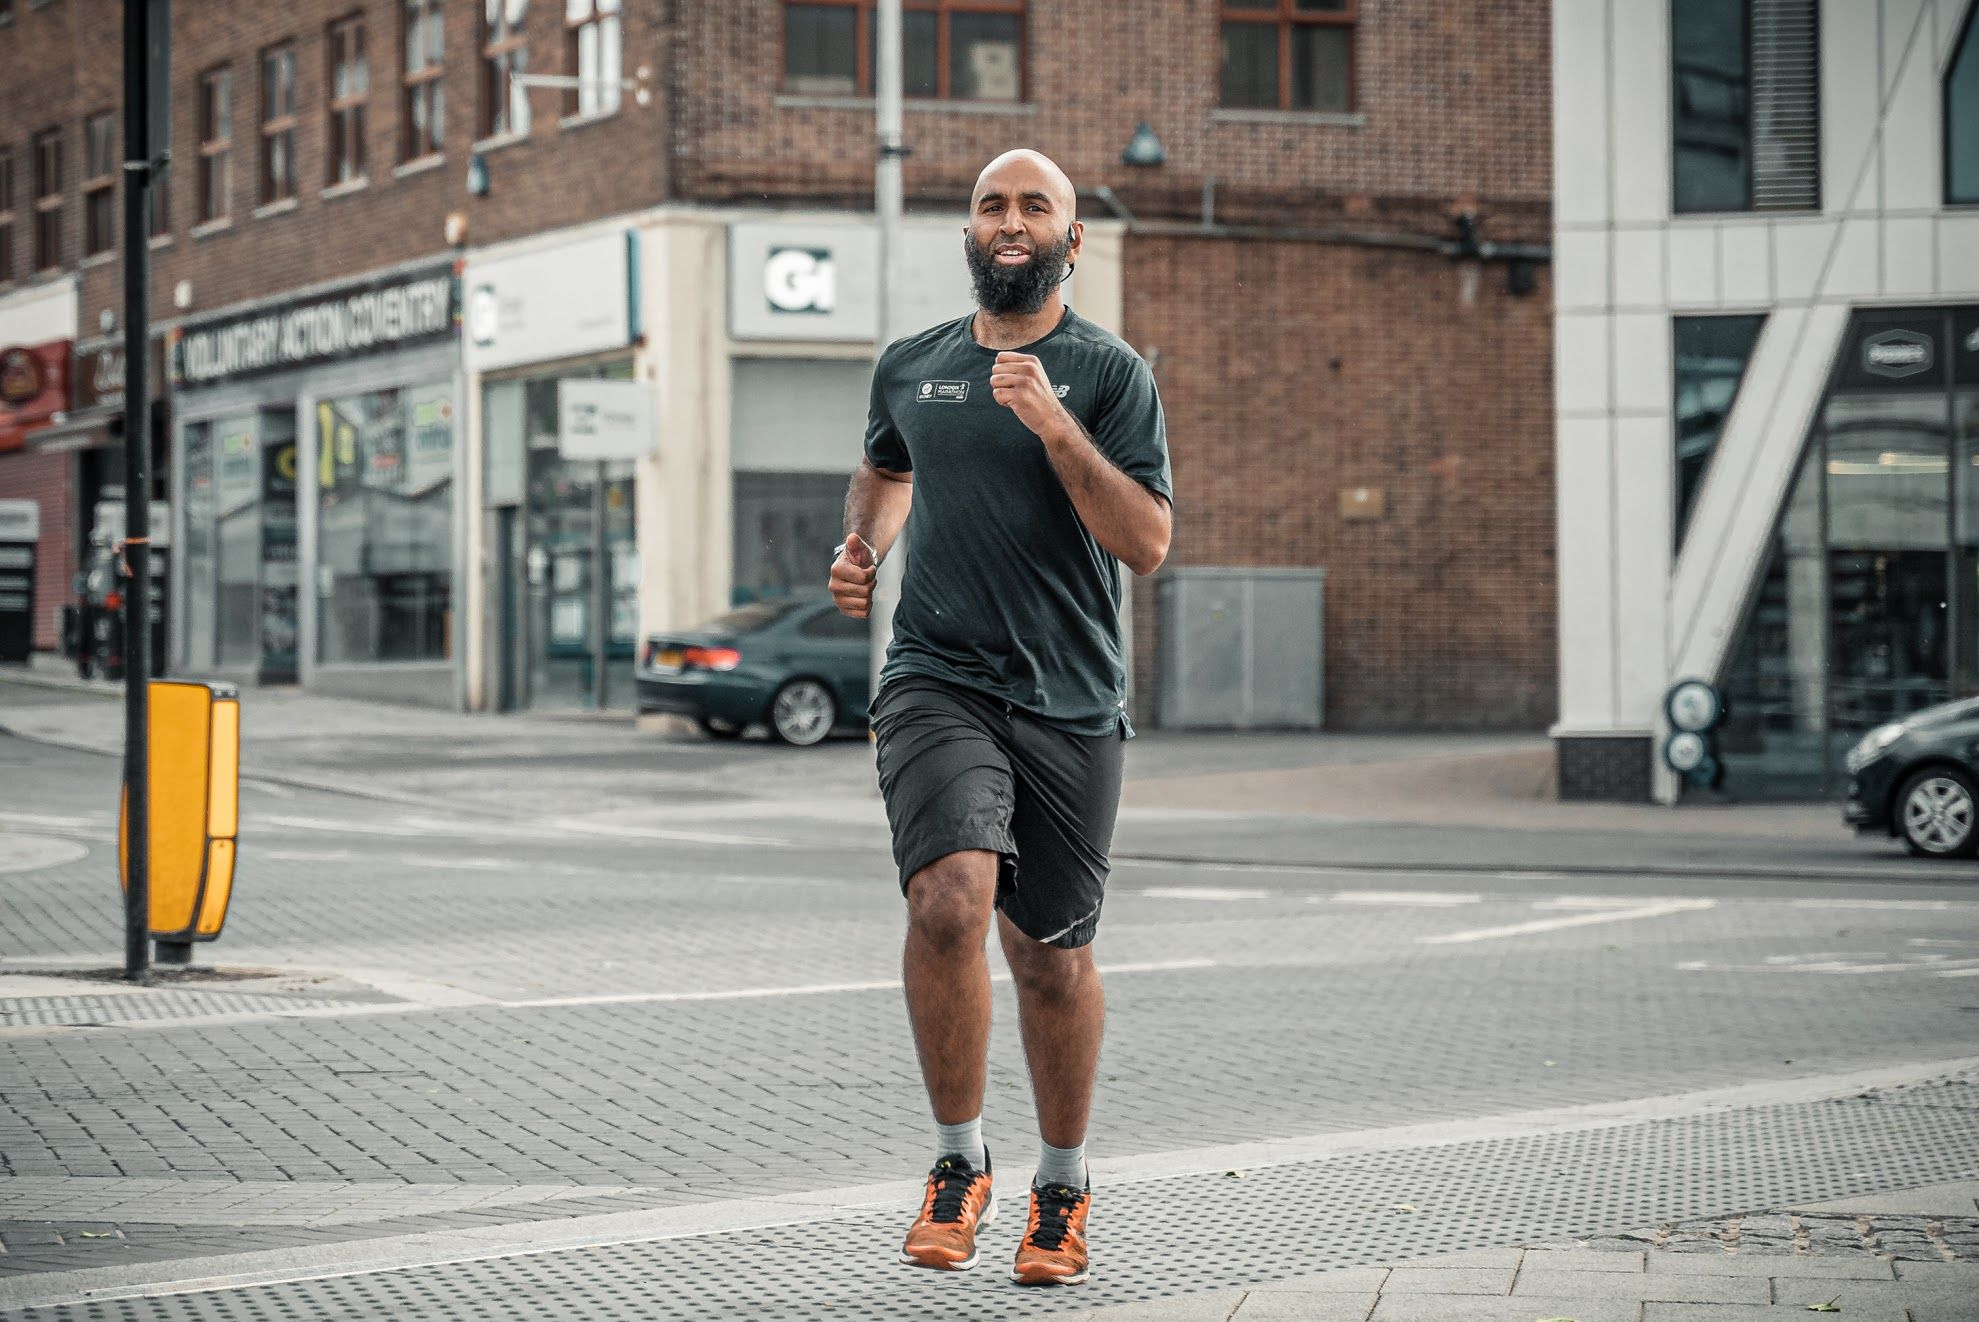 Runner catches thief after his 13-mile run